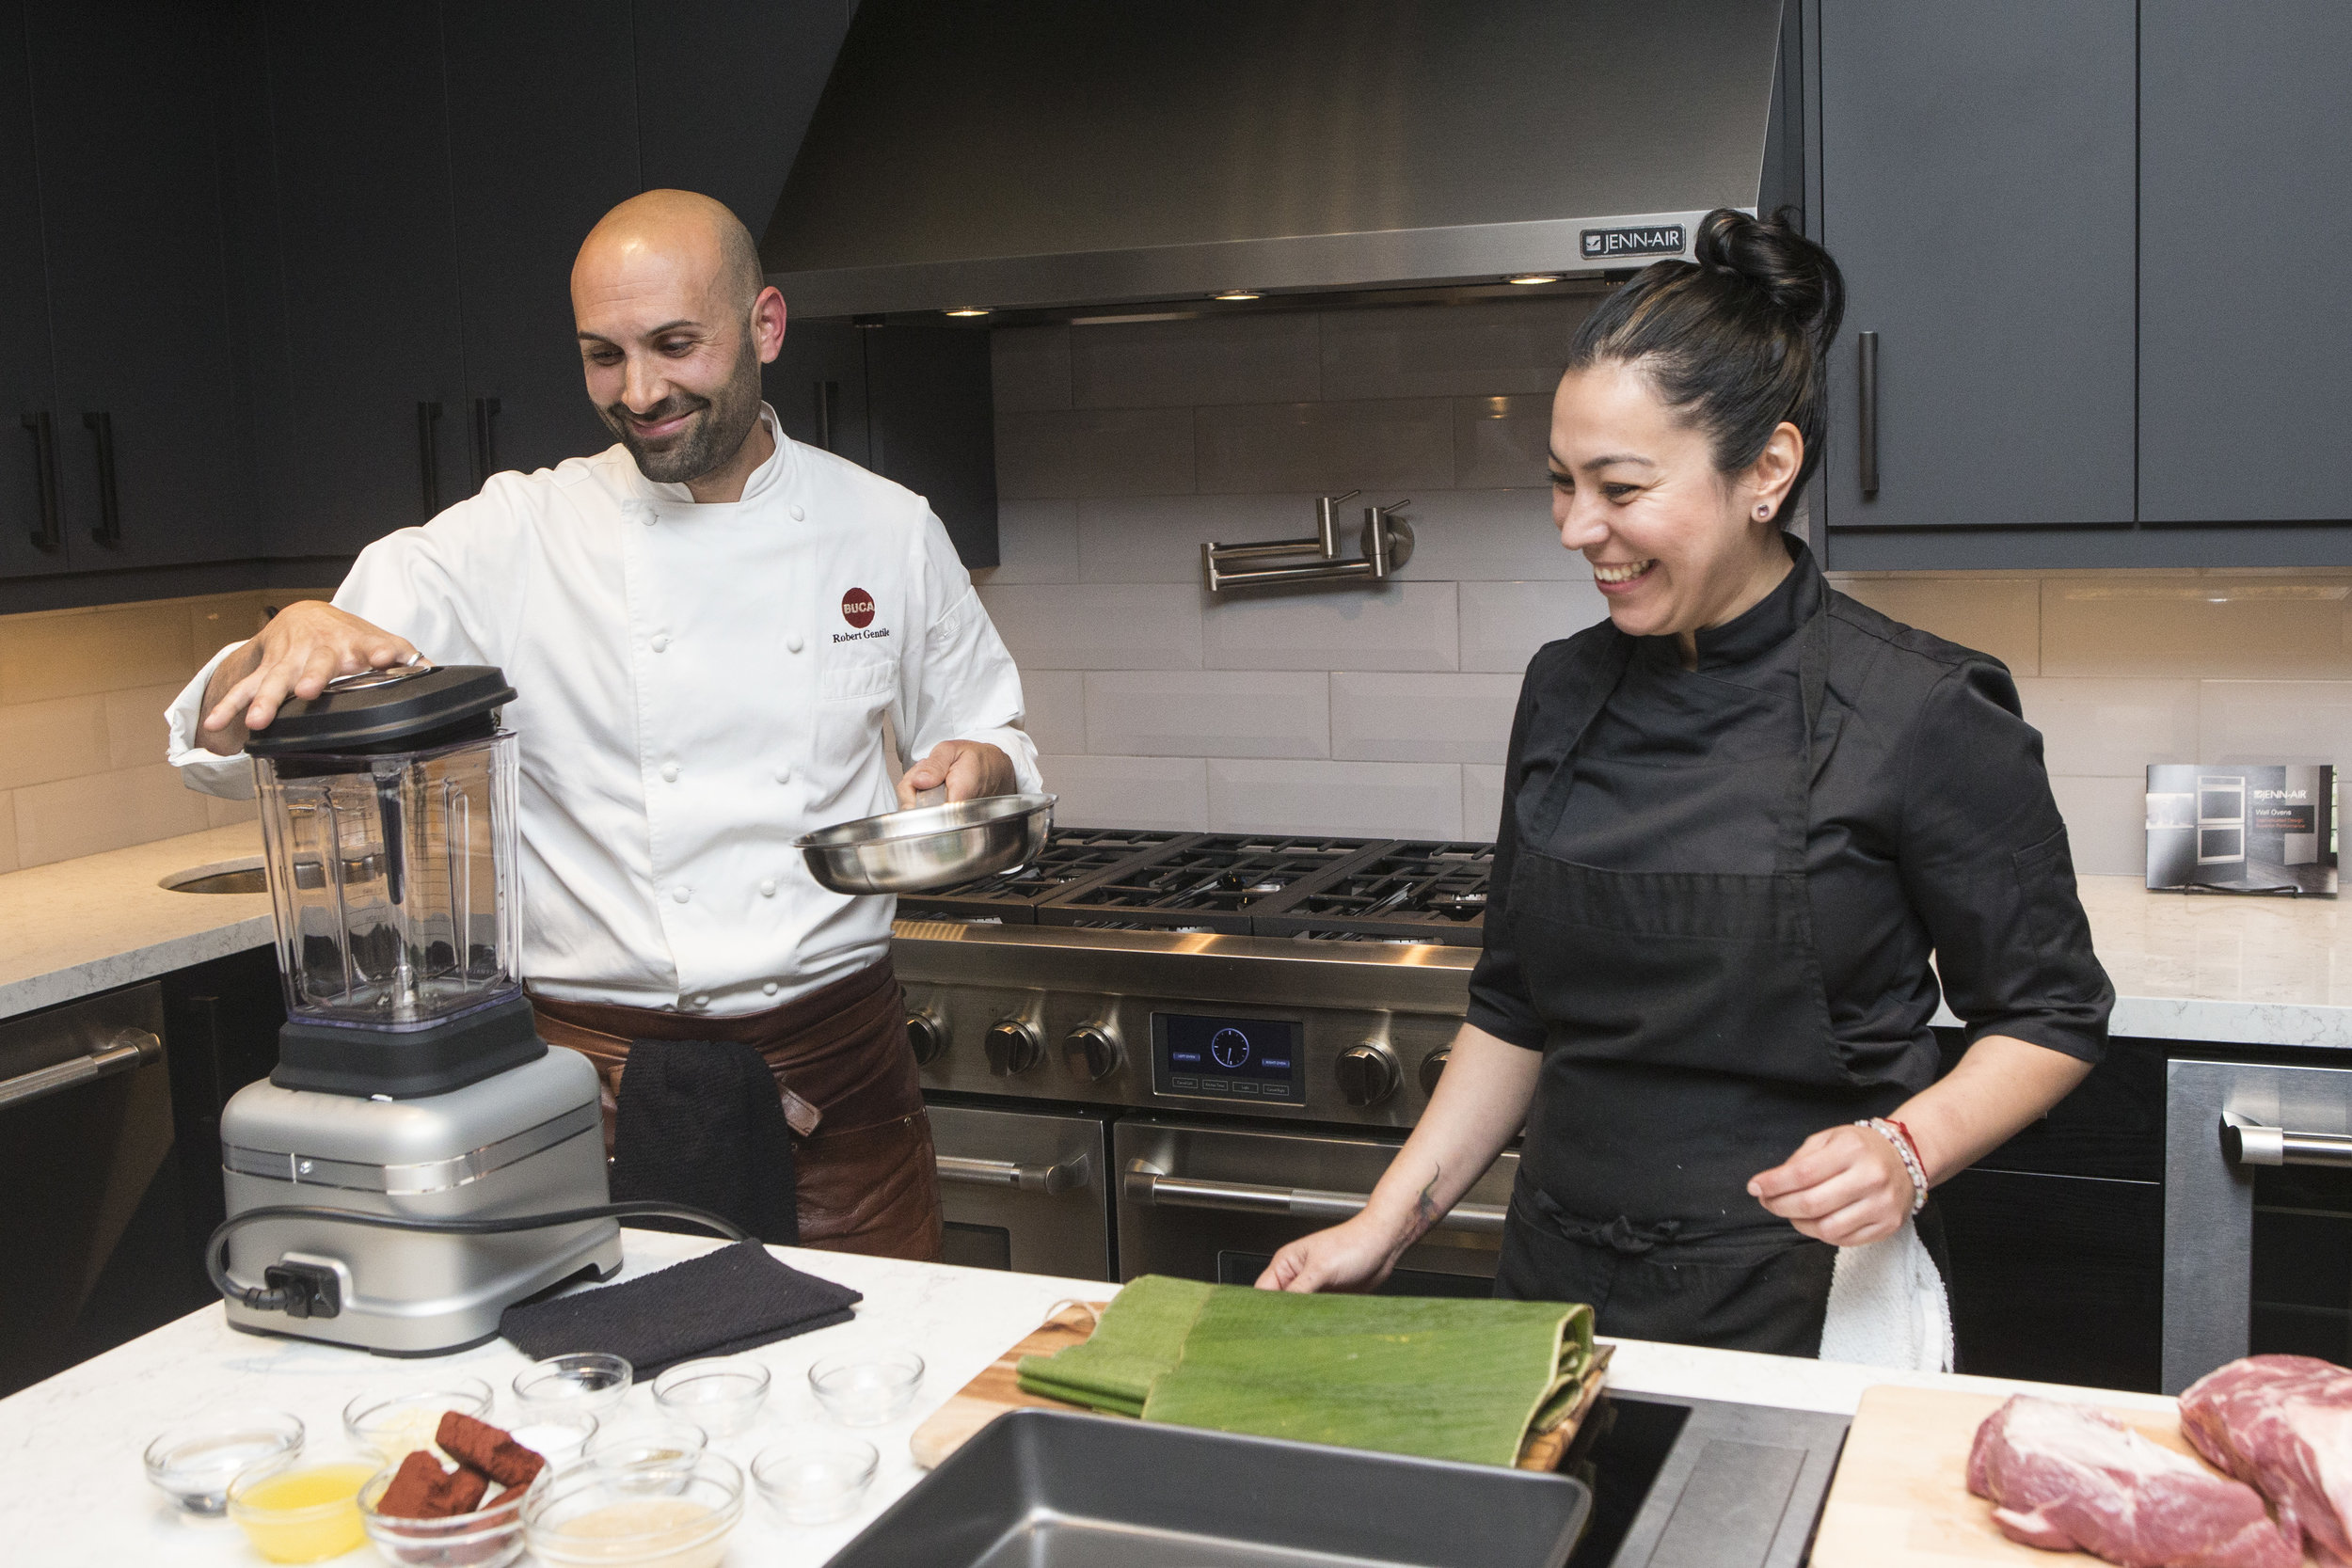 Chefs Rob Gentile and Elia Herrara start the evening with cooking demonstrations using state-of-the-art Jenn-Air appliances. photo: Chris Young